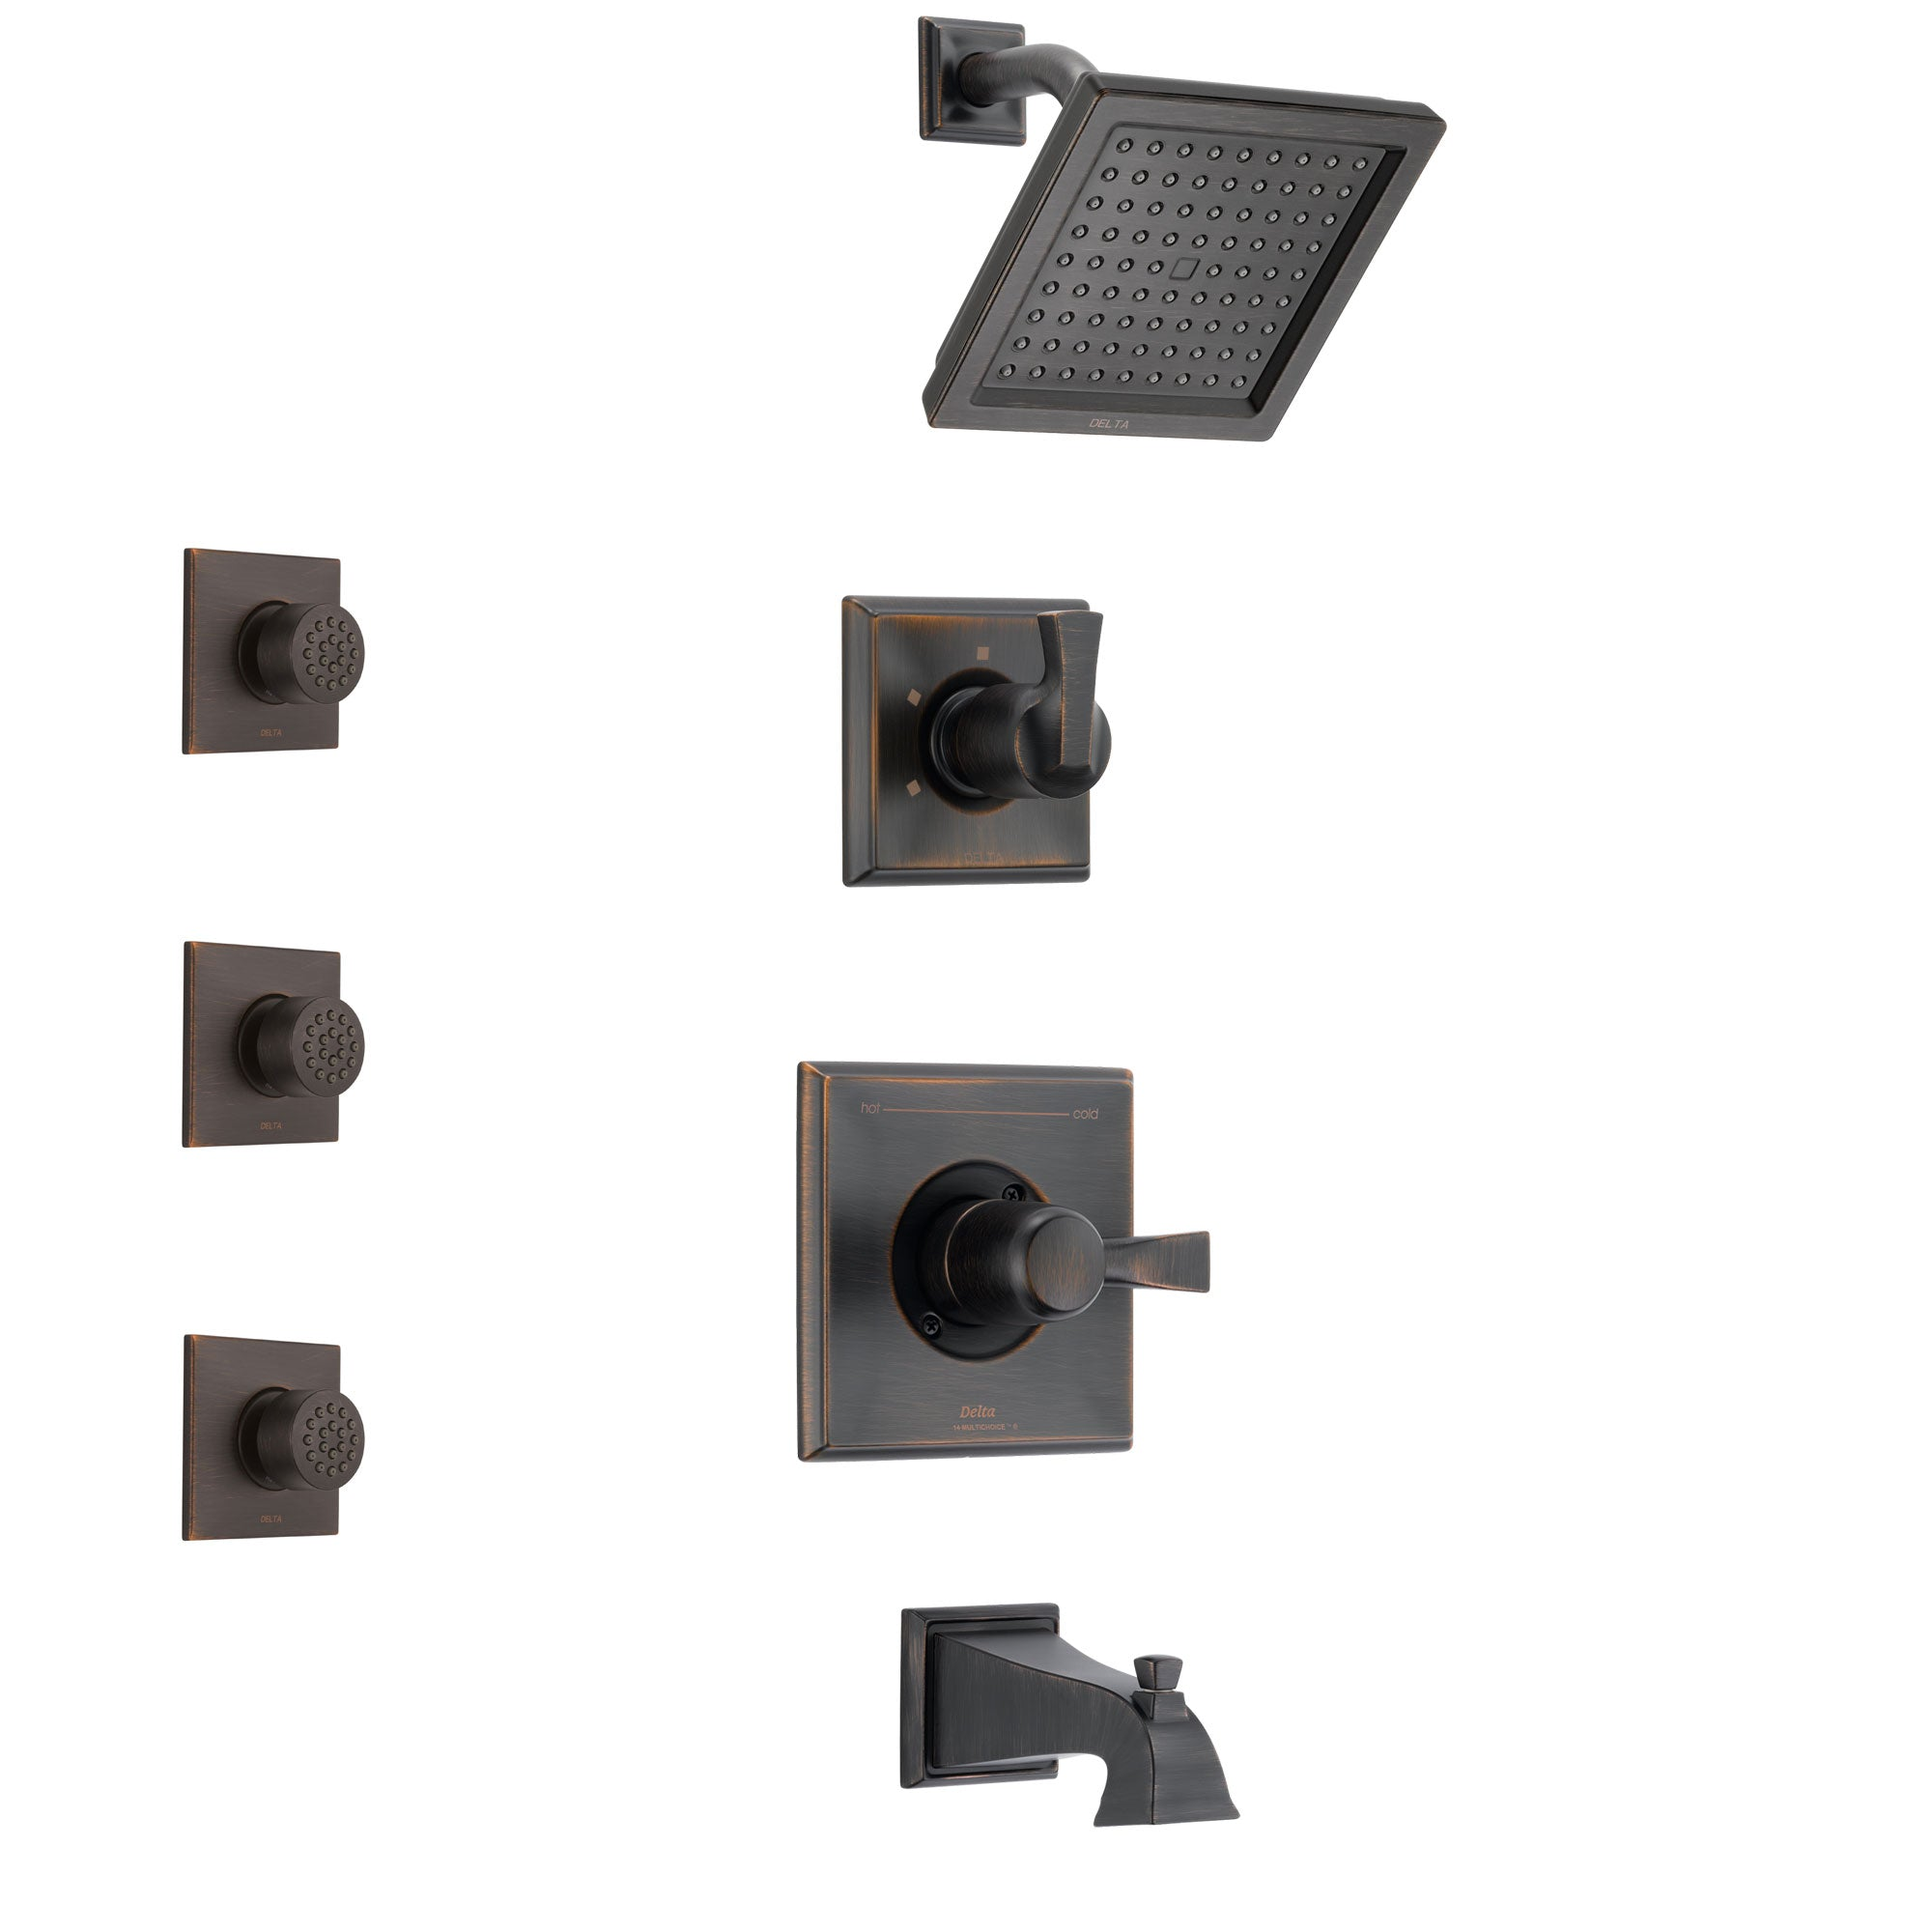 Delta Dryden Venetian Bronze Finish Tub and Shower System with Control Handle, 3-Setting Diverter, Showerhead, and 3 Body Sprays SS144511RB2